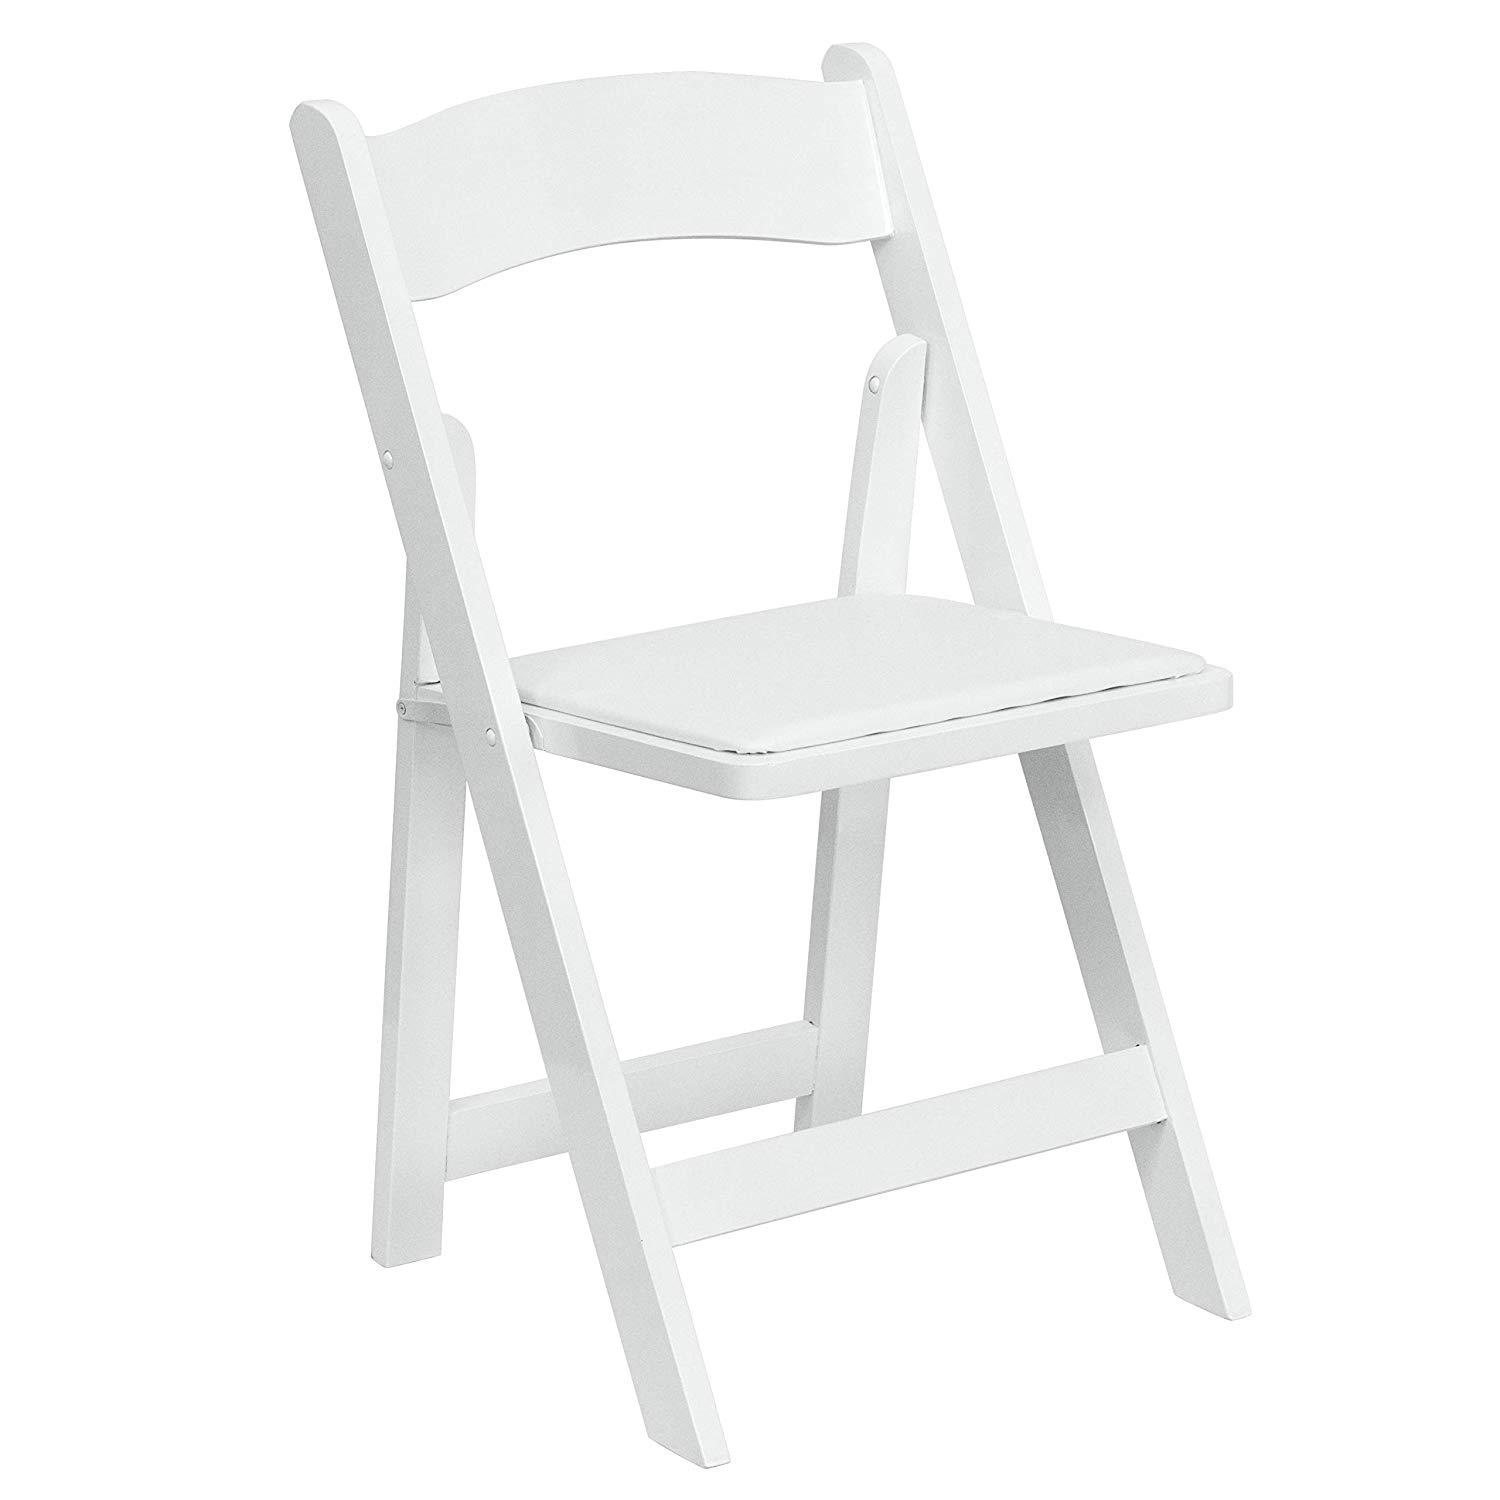 Folding Padded Chairs – White